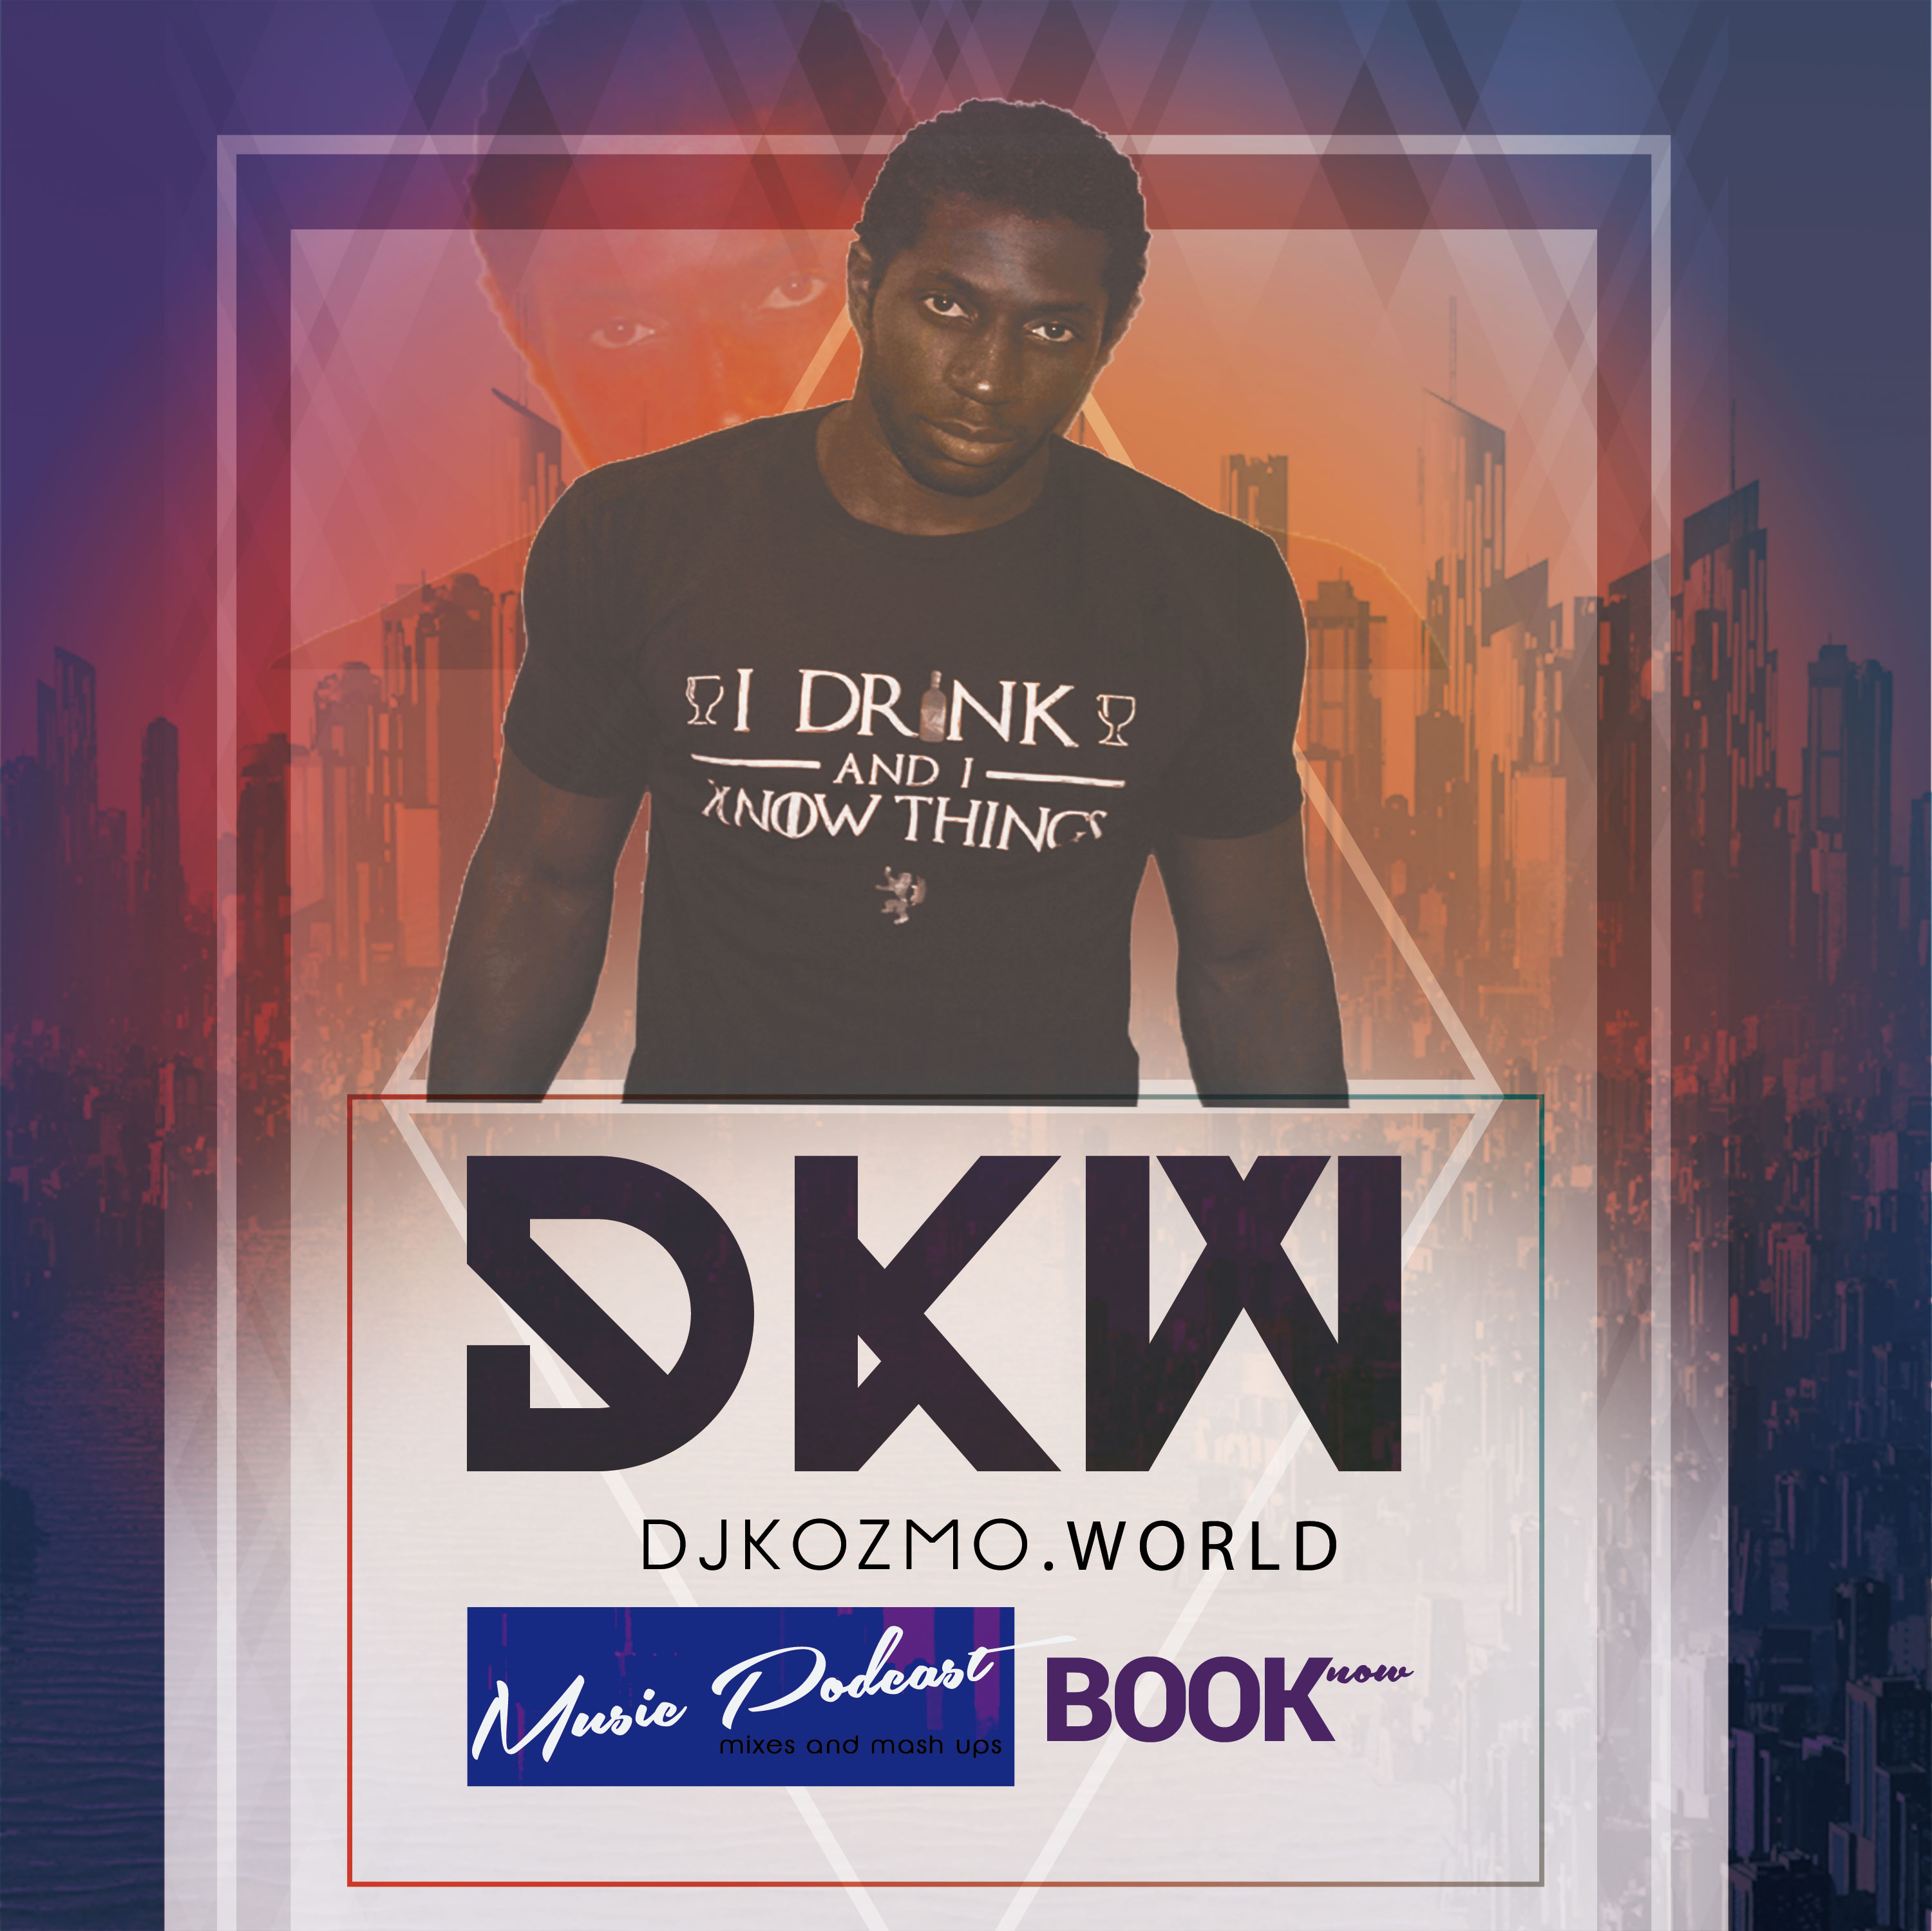 A simple island boy looking to conquer the world DJ Komo